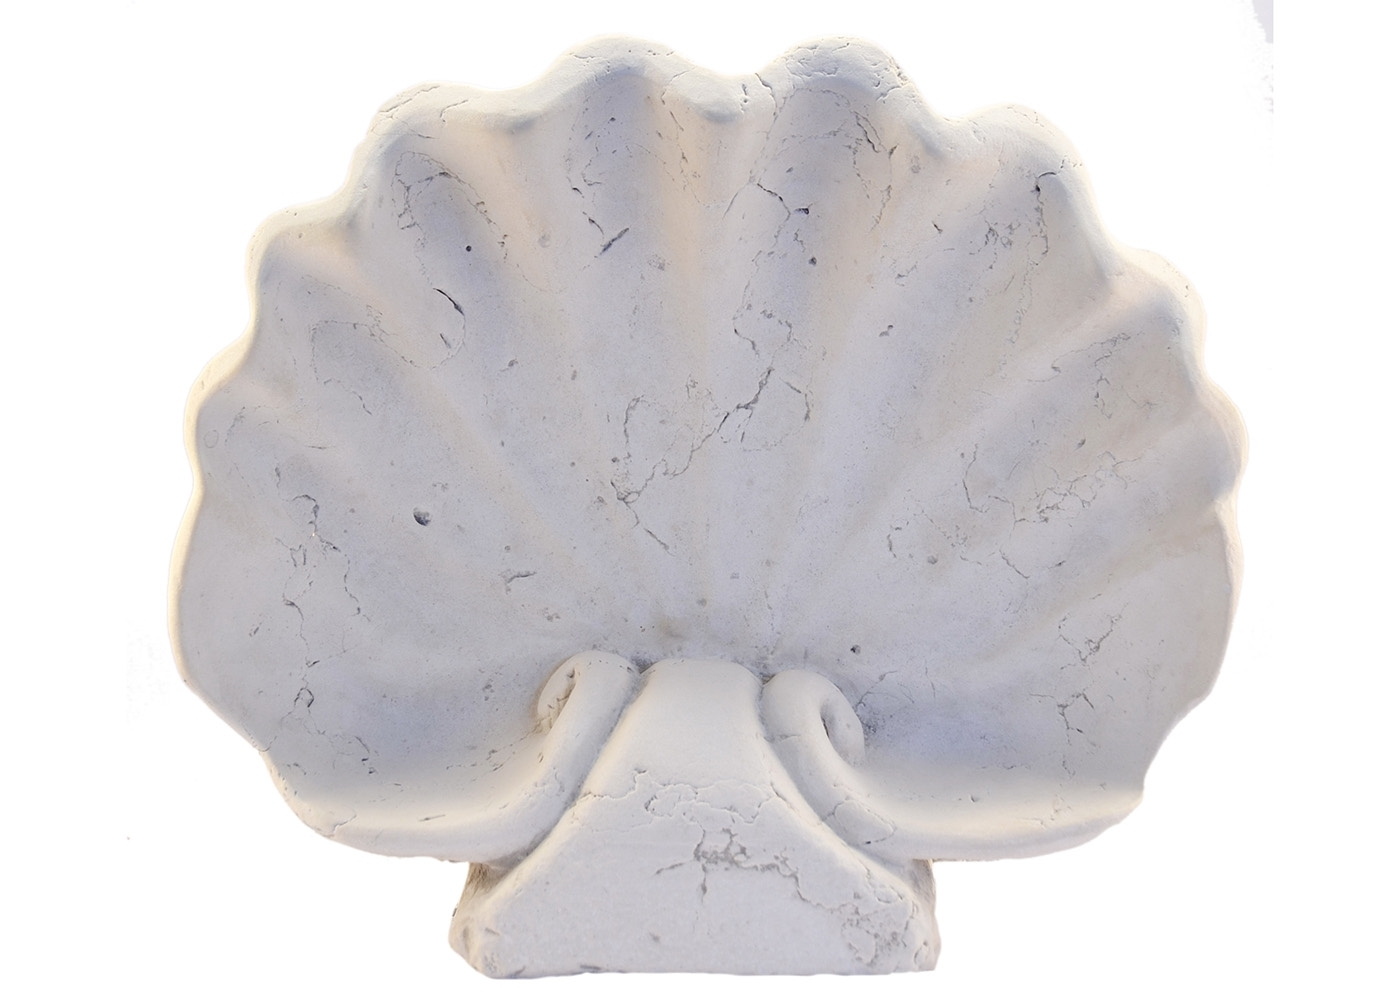 Buy Marble Shell Glove Carved By Hand 17457692 | Italy2Us.com